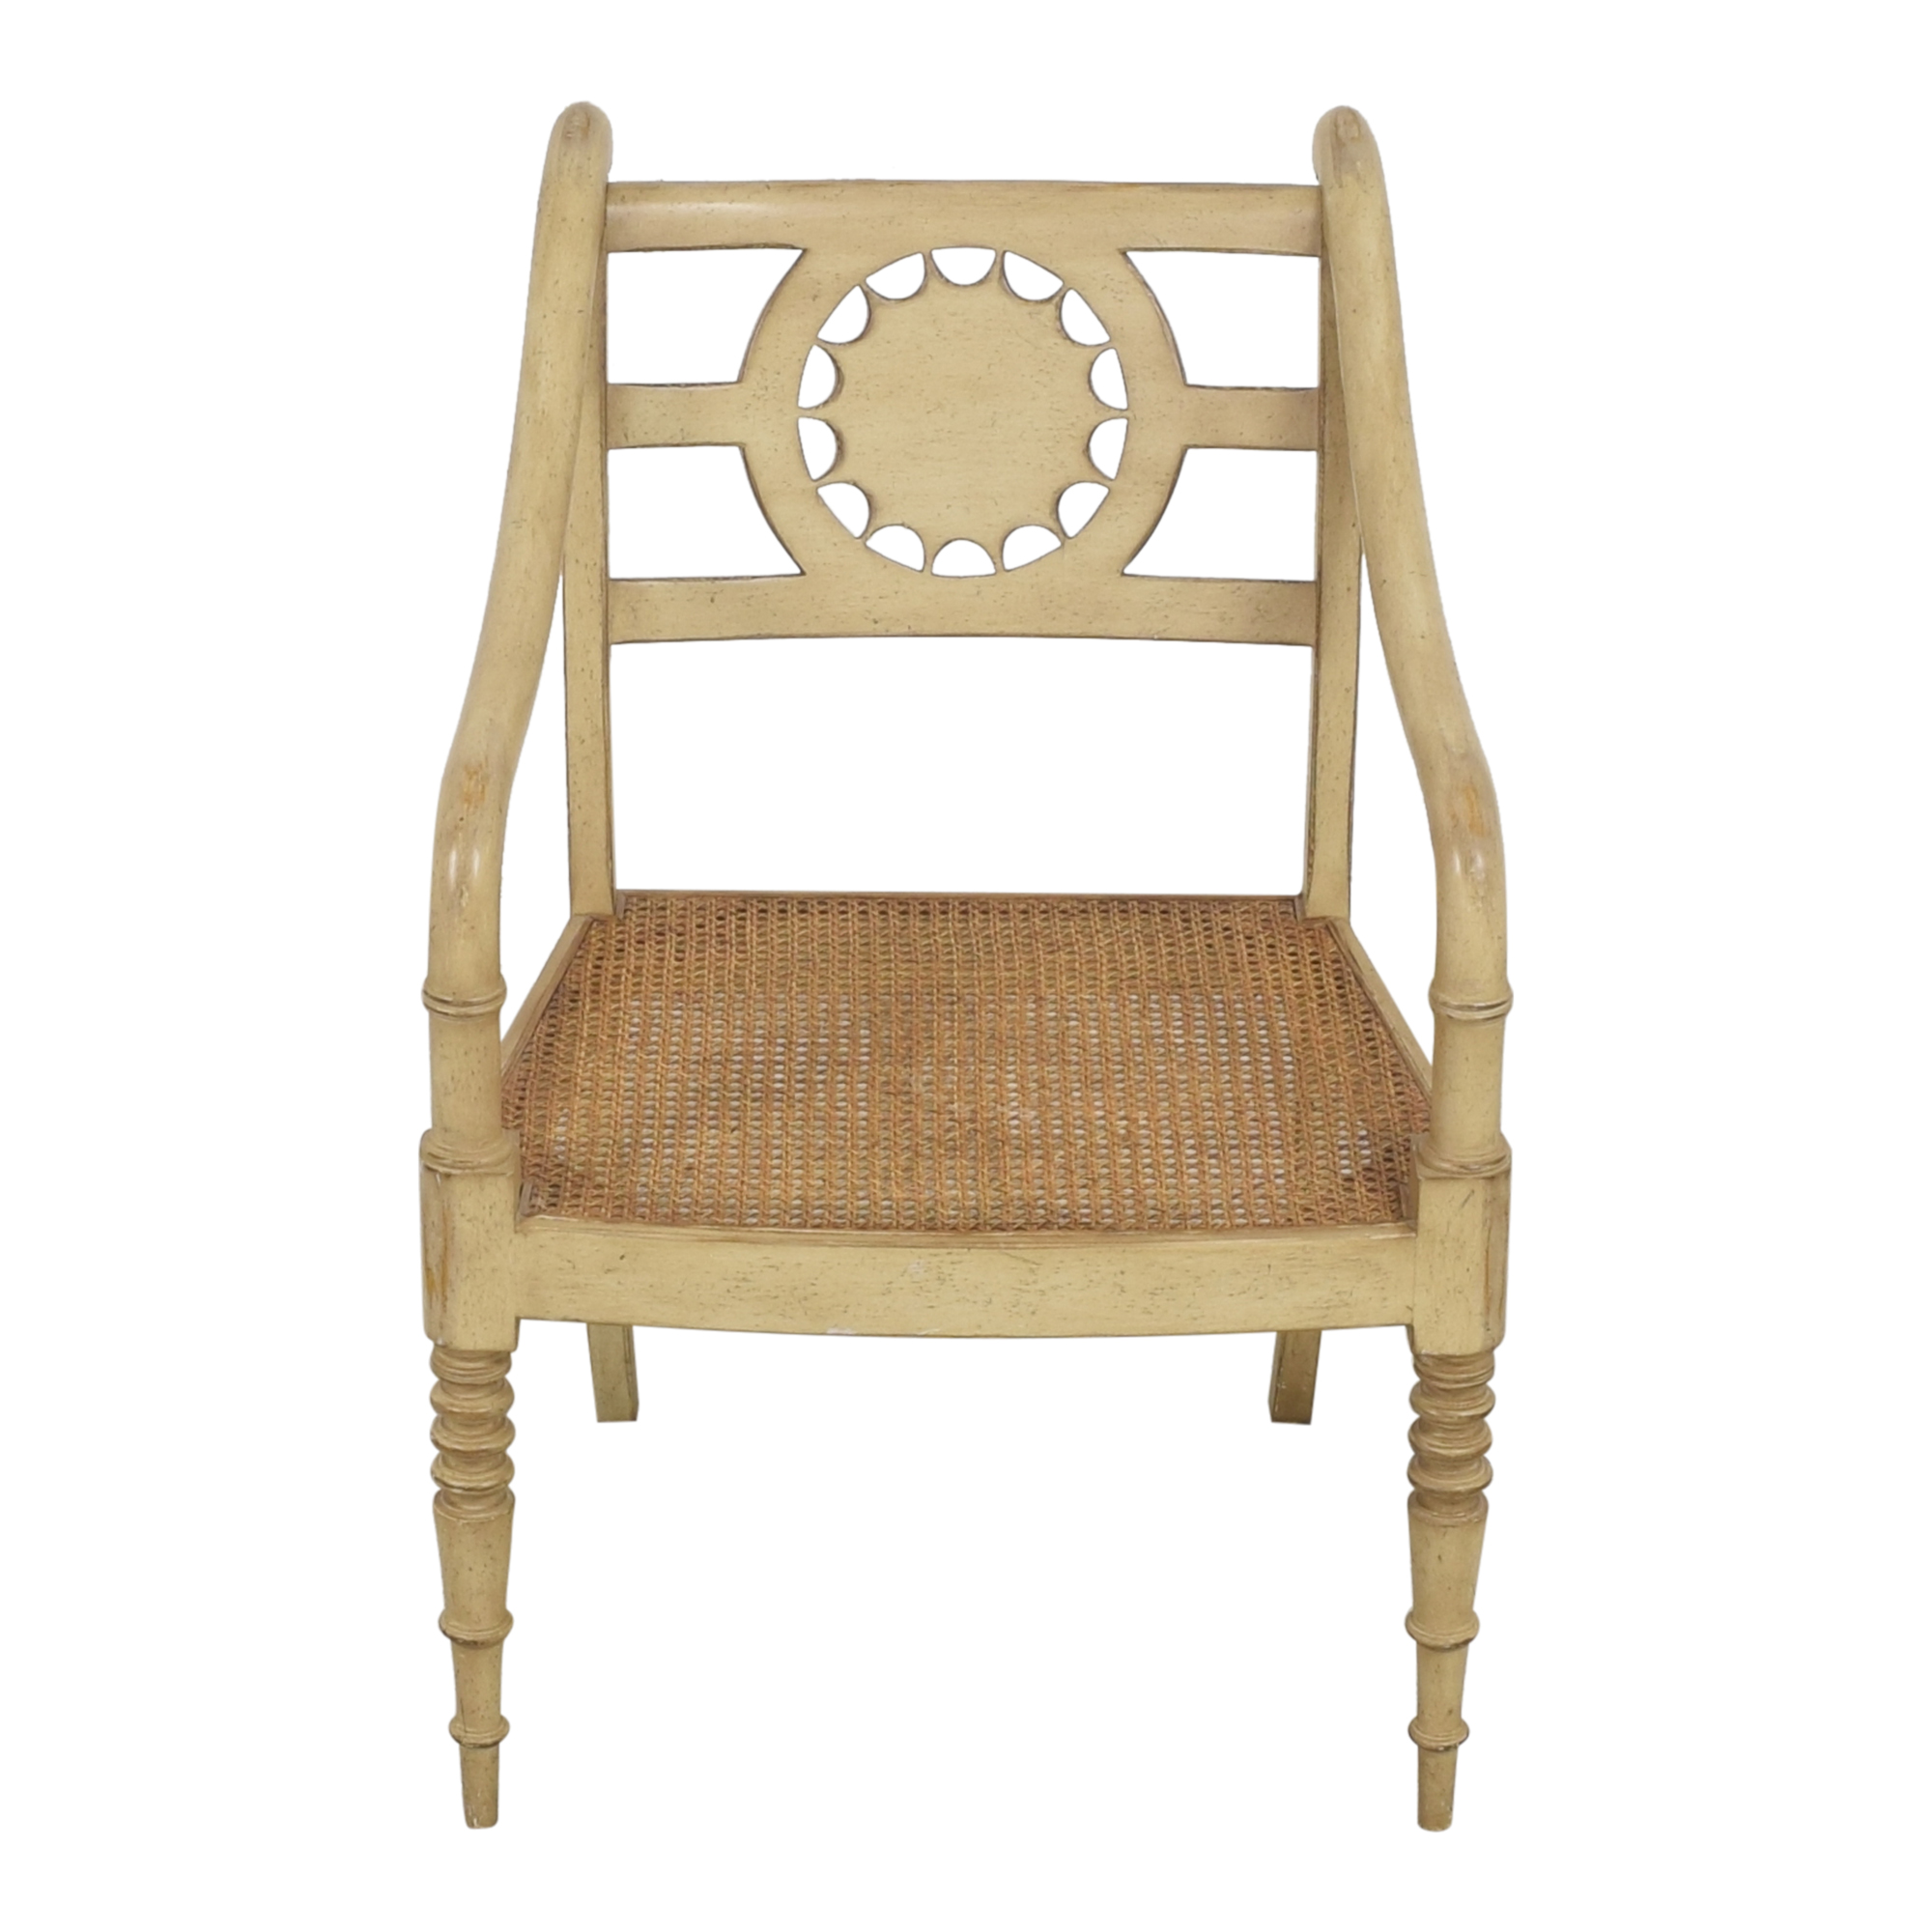 Baker Furniture Baker Furniture Cane Seat Accent Chair for sale